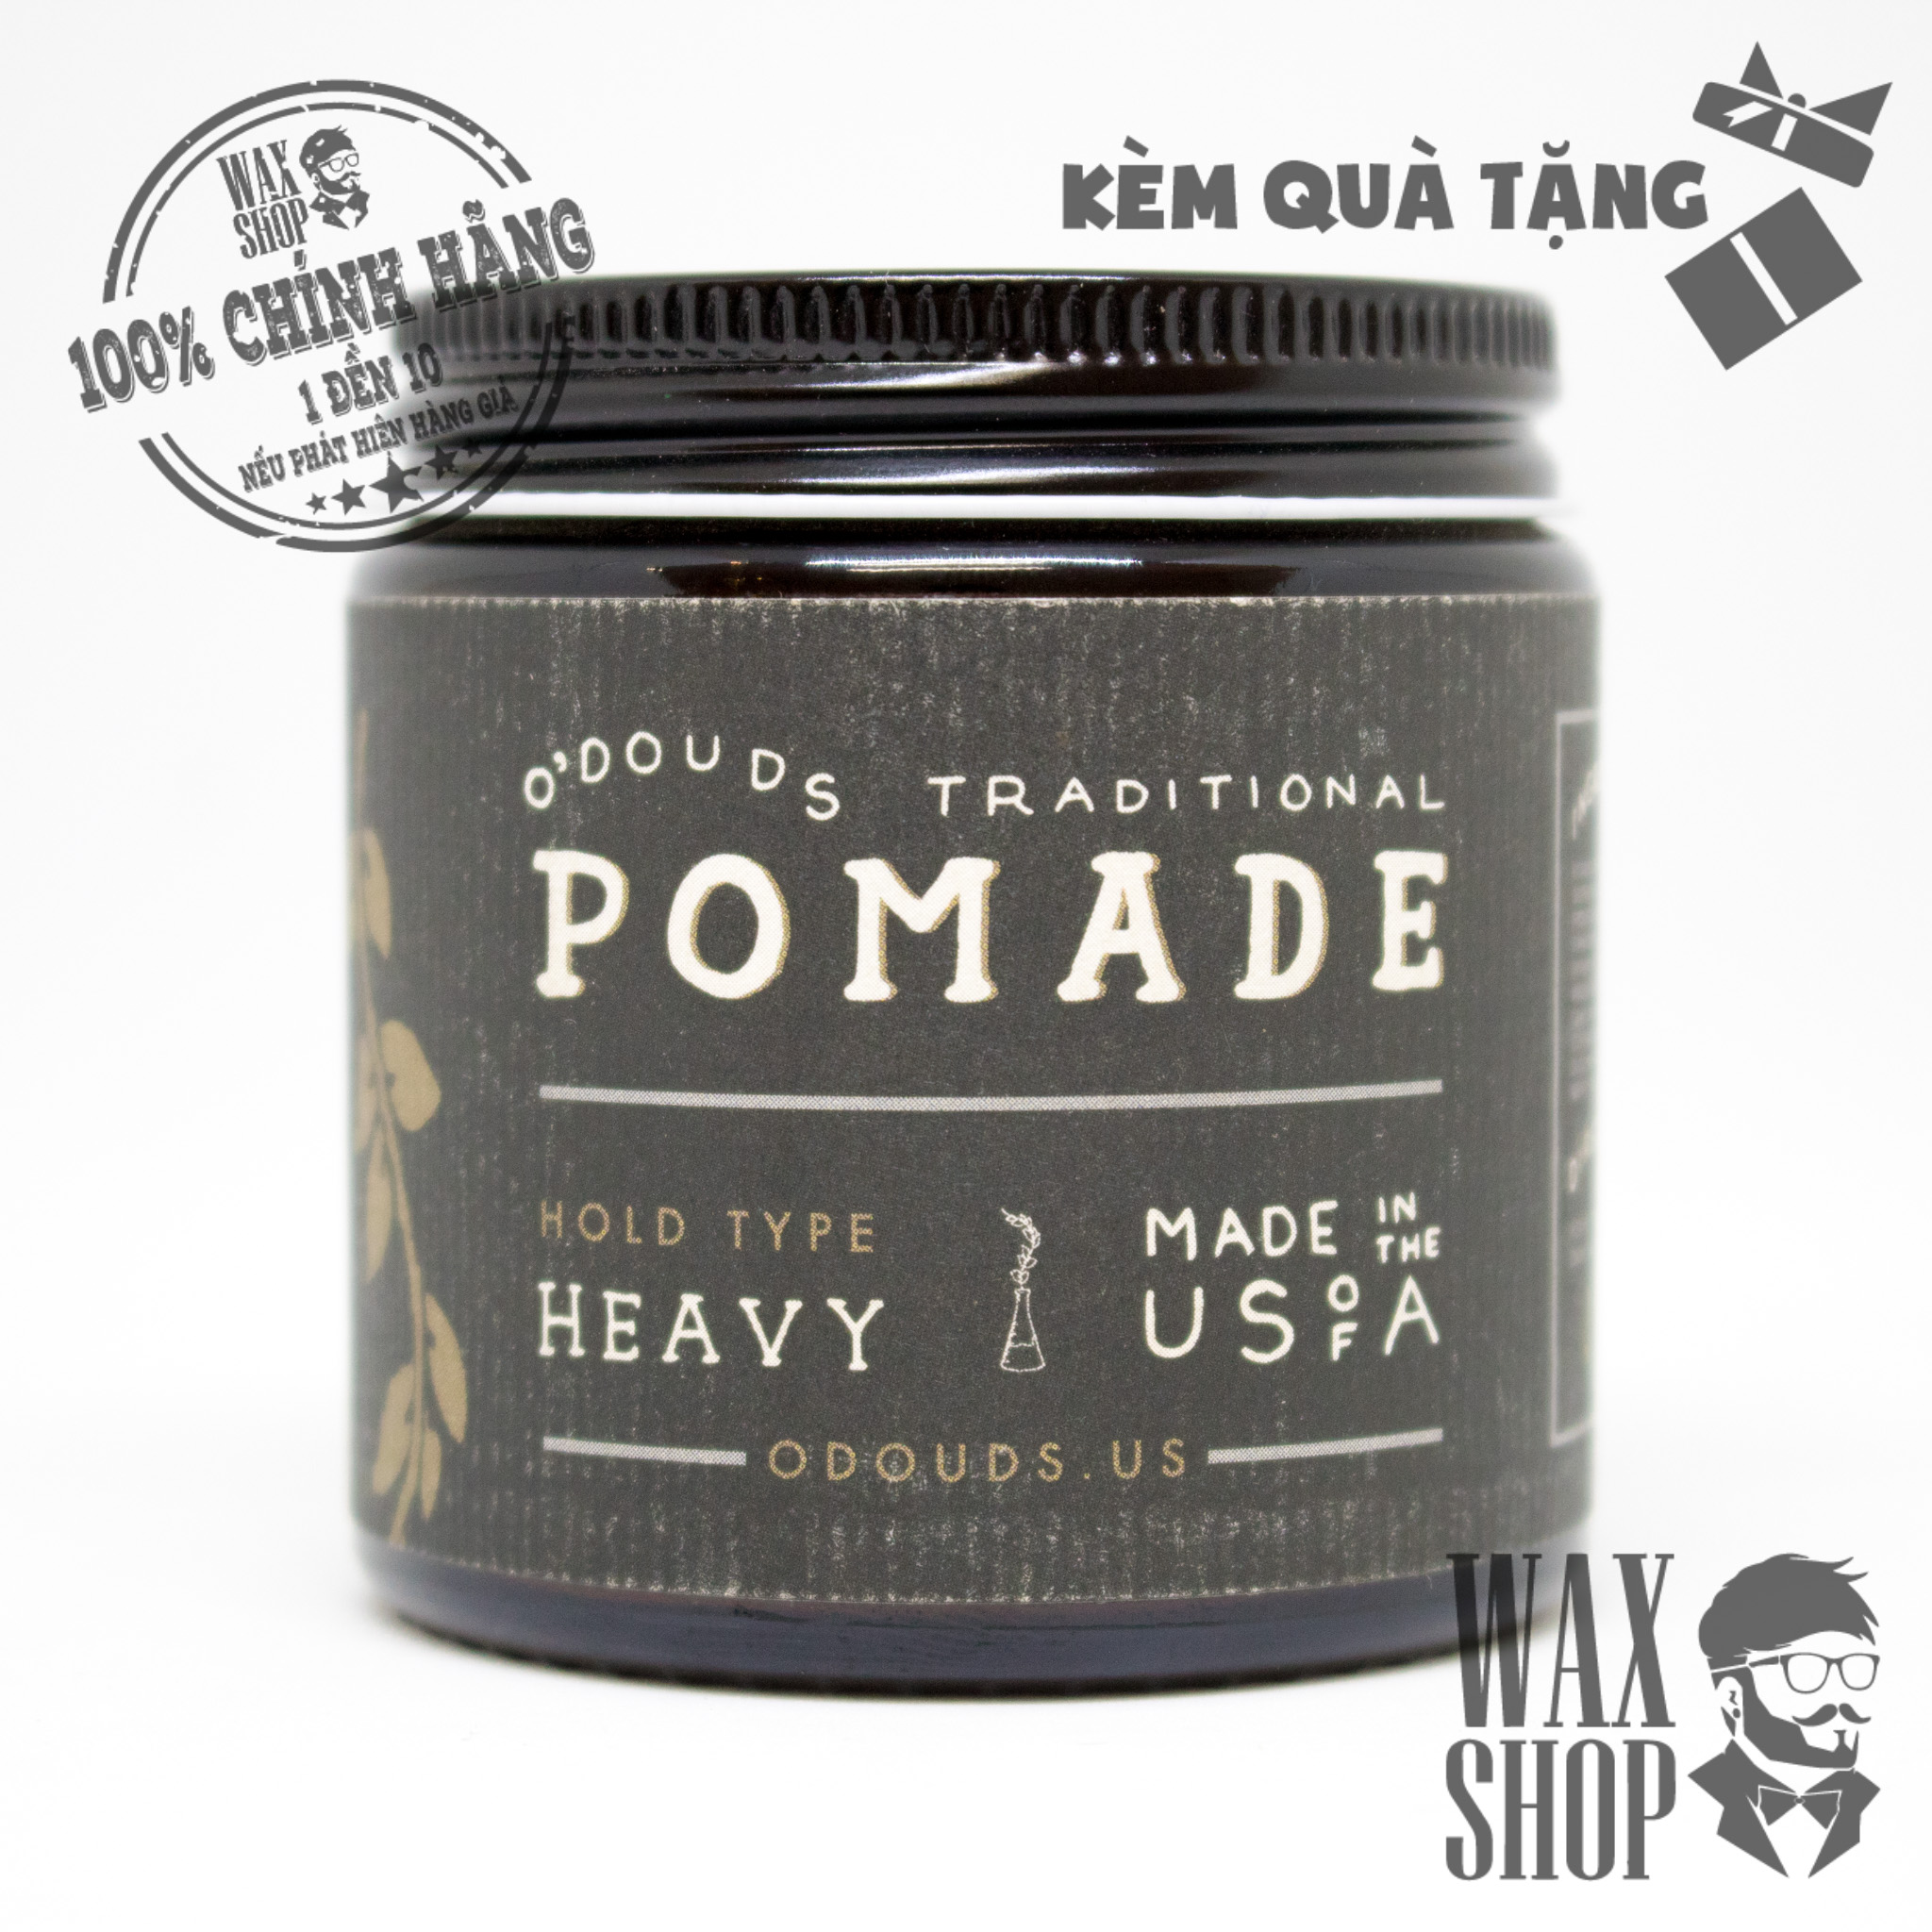 O'Douds - Pomade Traditional